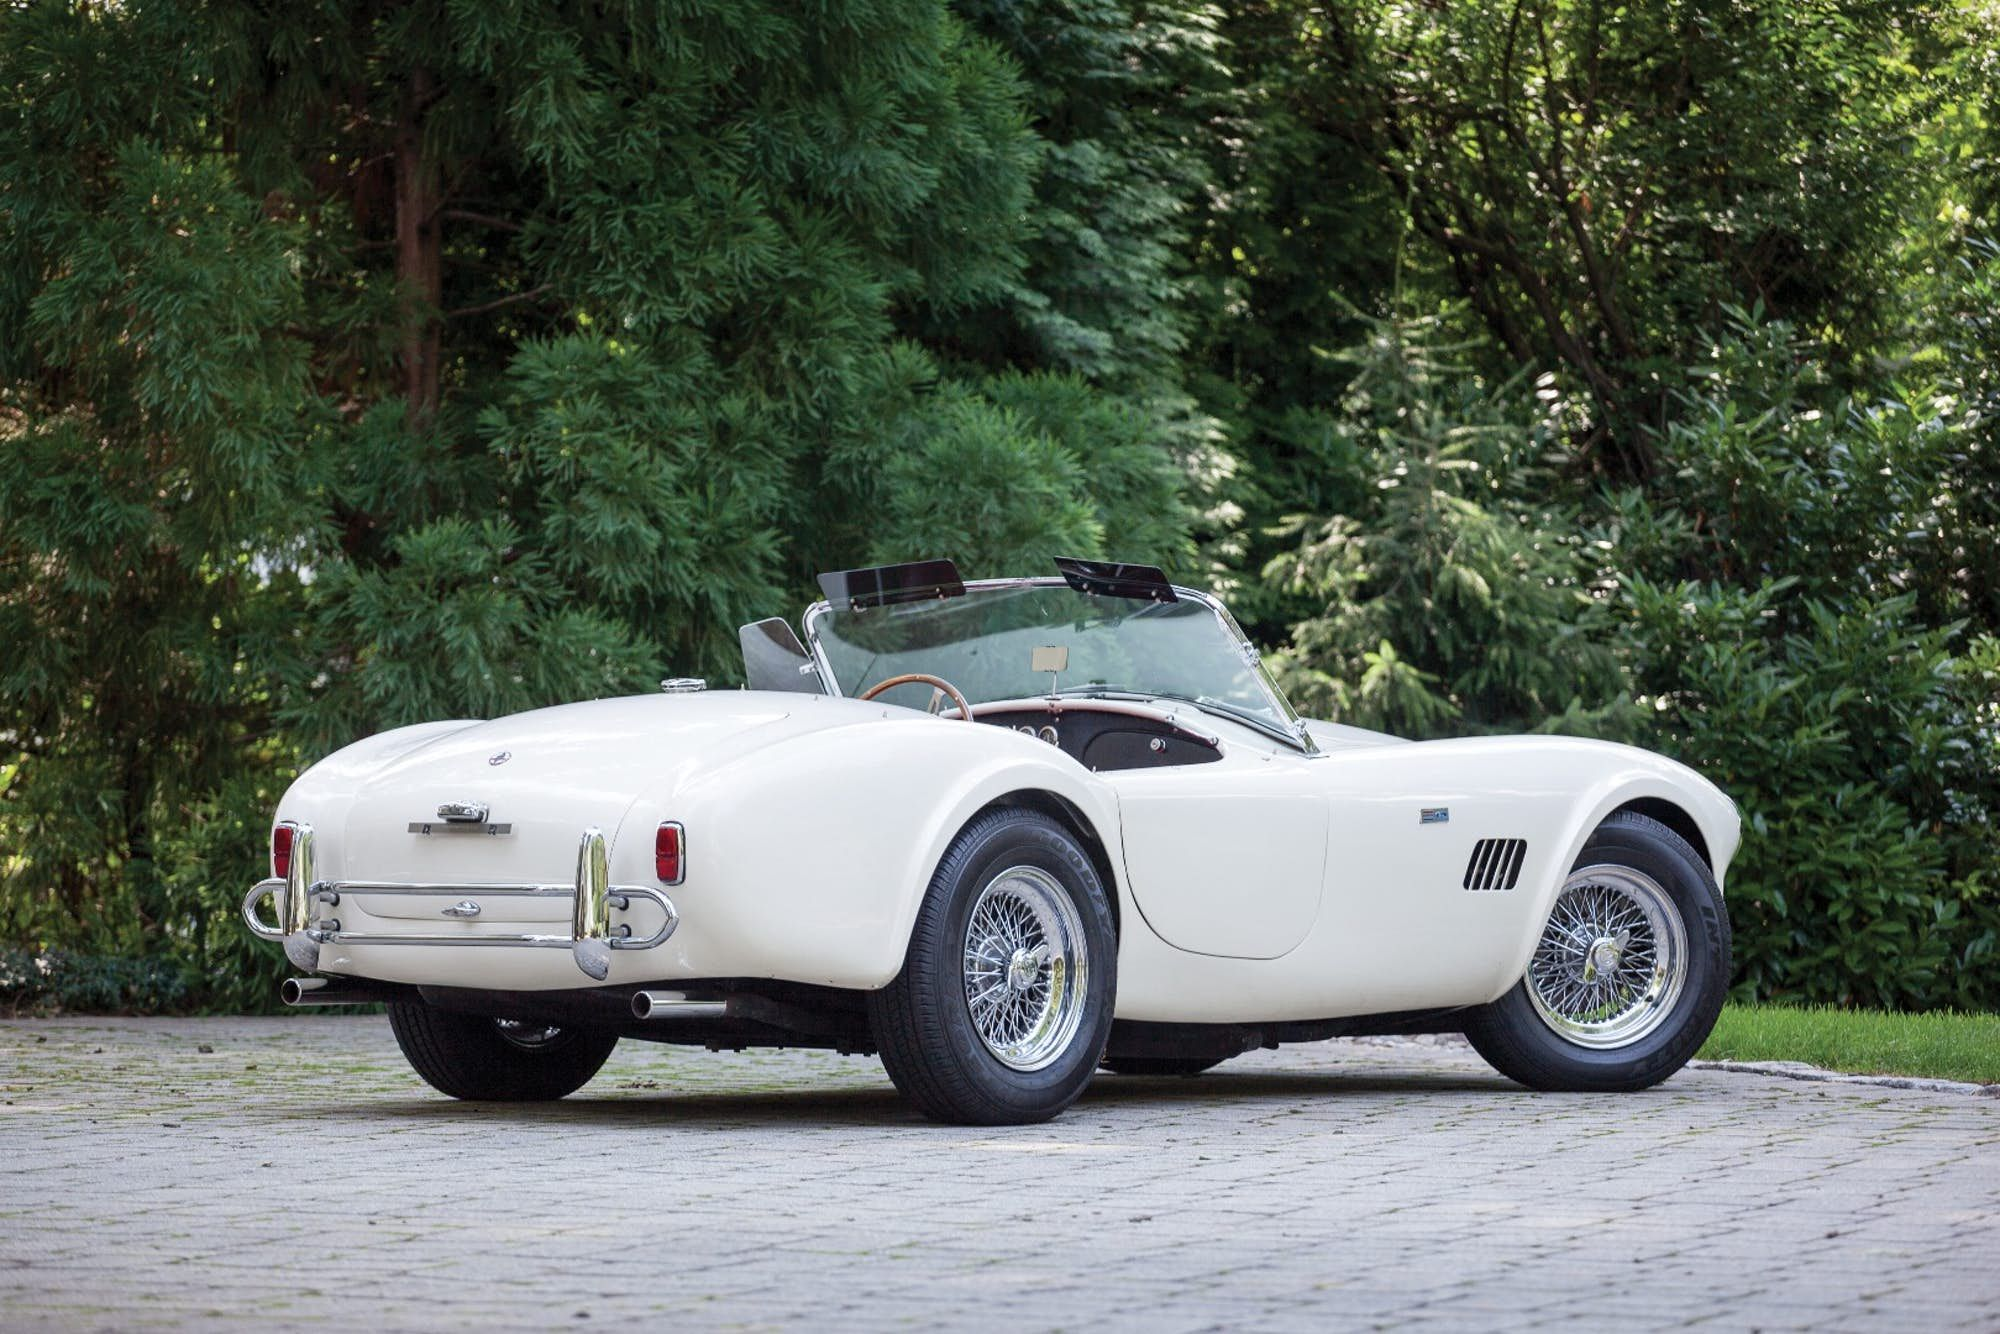 This 1964 shelby 289 cobra has an estimated price of 950 000 to 1 100 000